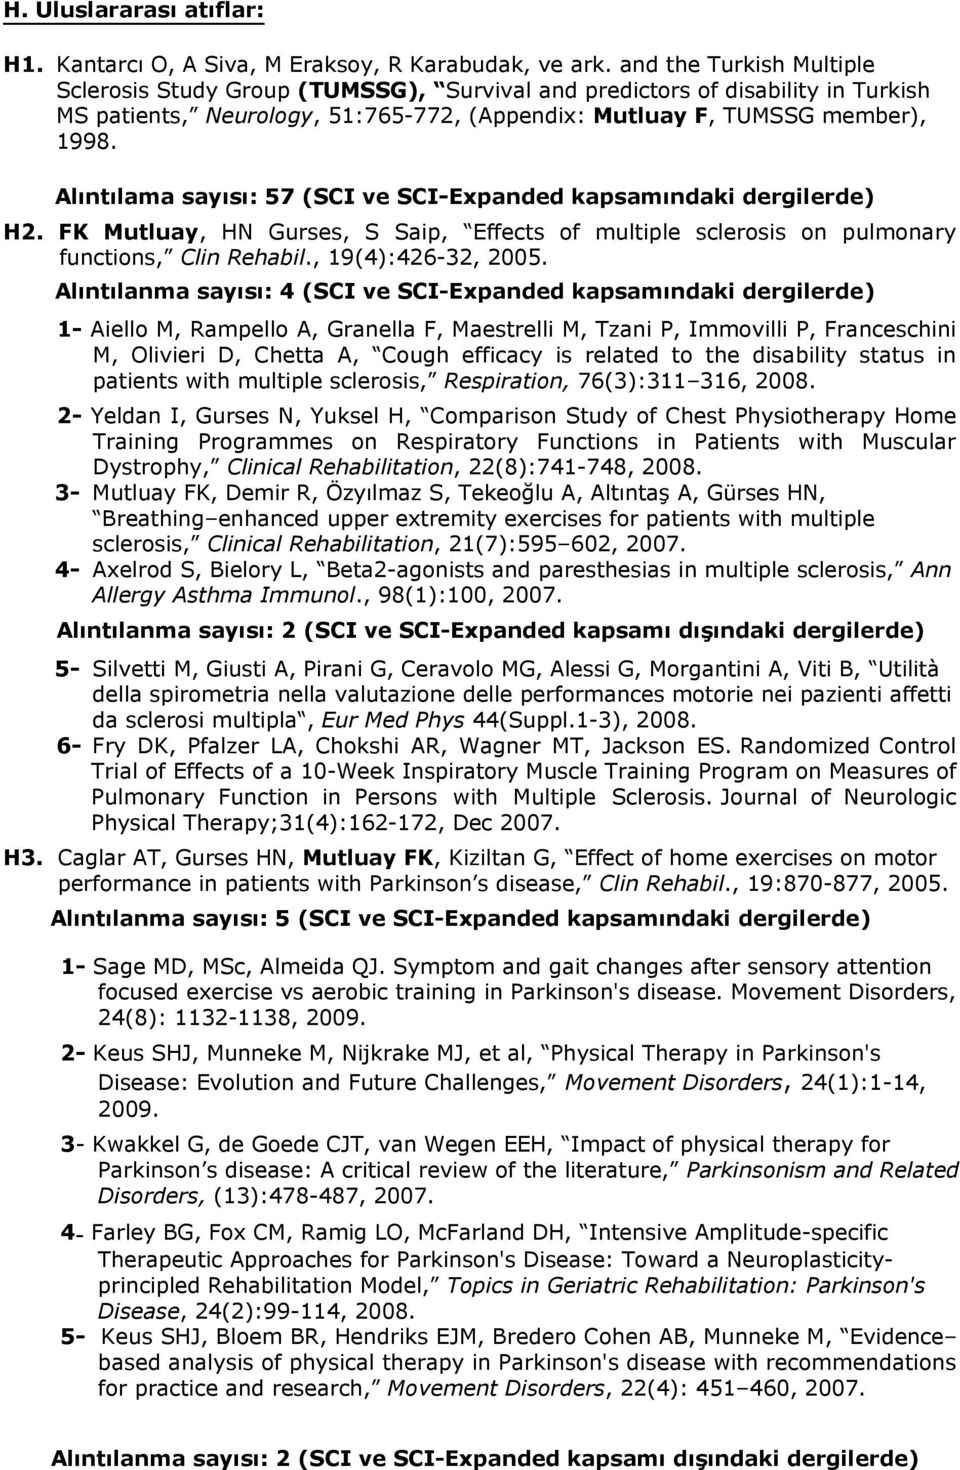 Alıntılama sayısı: 57 (SCI ve SCI-Expanded kapsamındaki dergilerde) H2. FK Mutluay, HN Gurses, S Saip, Effects of multiple sclerosis on pulmonary functions, Clin Rehabil., 19(4):426-32, 2005.